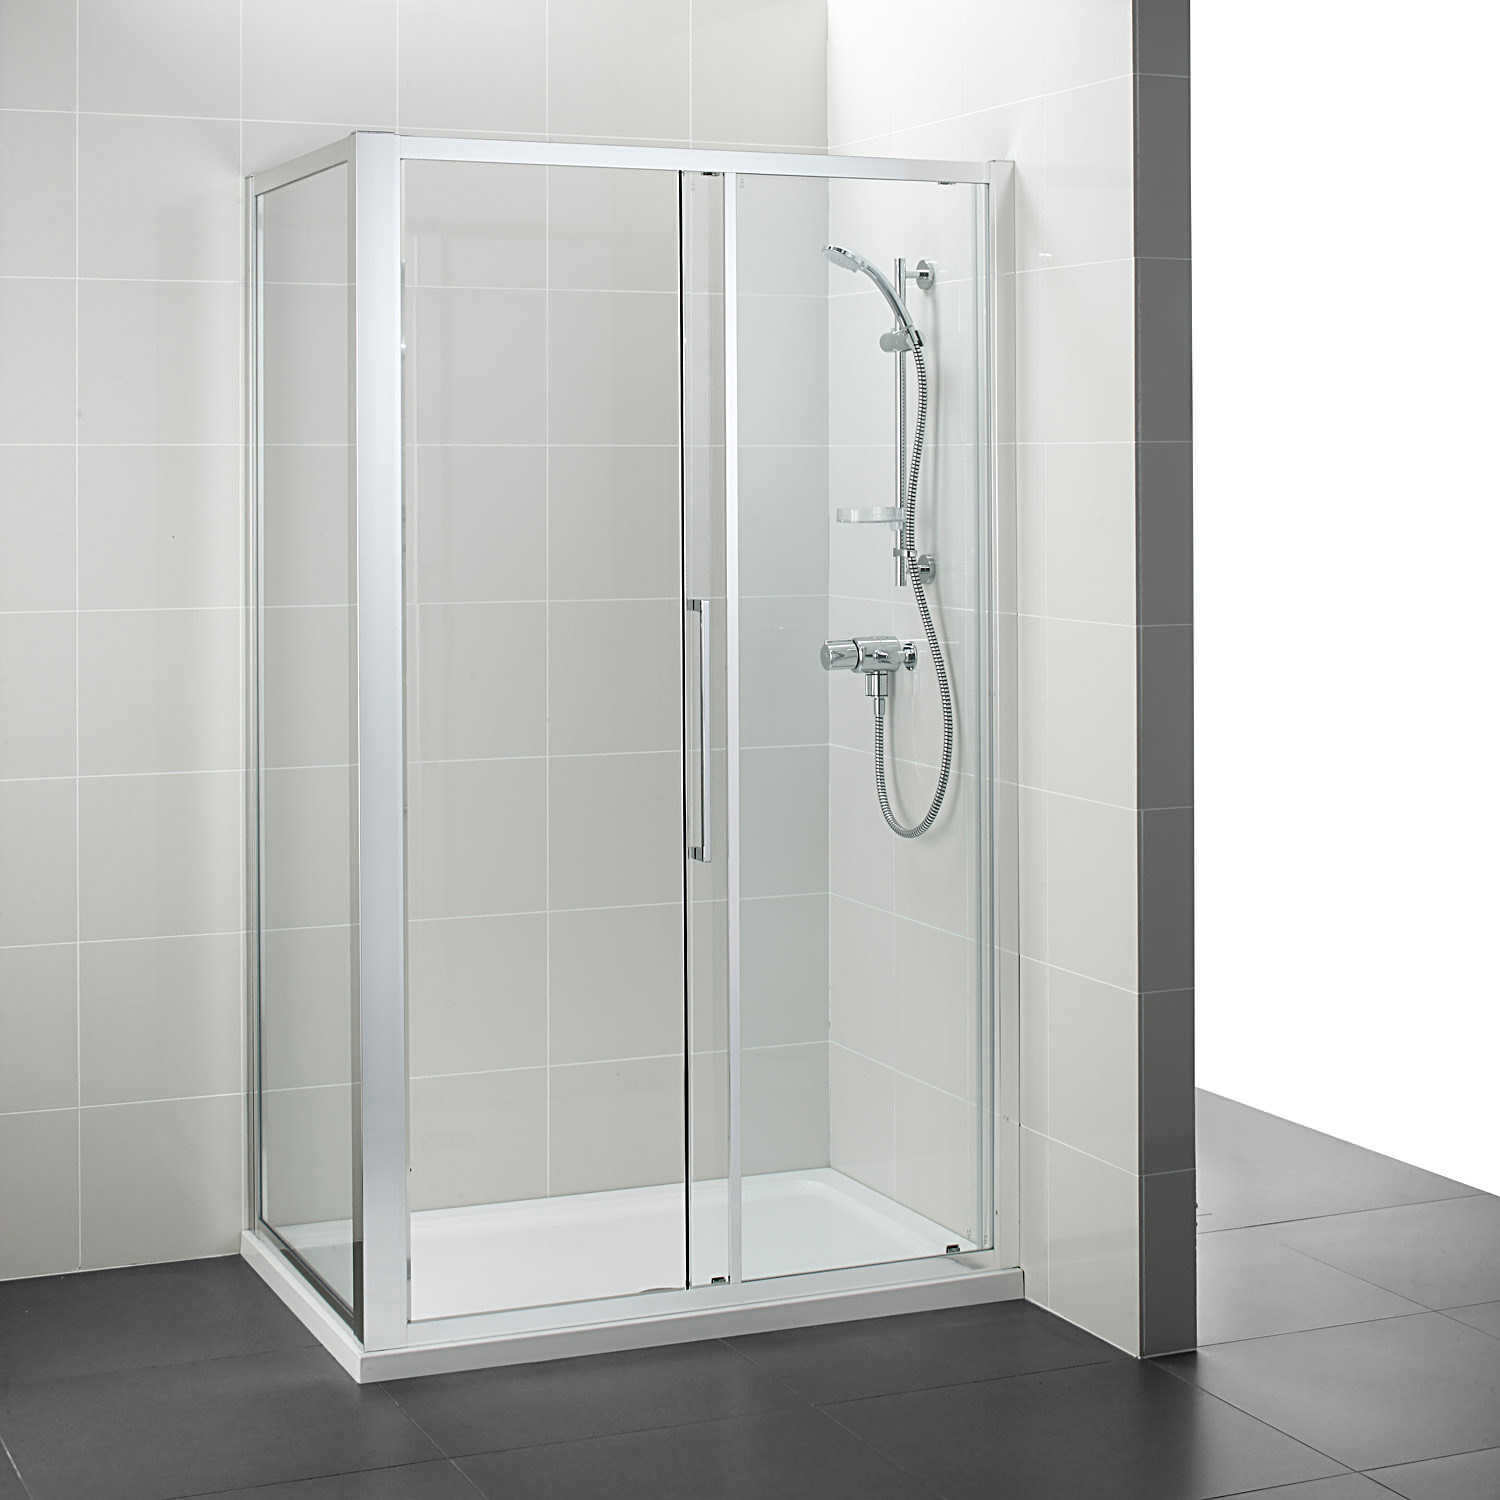 Ideal standard kubo 1000mm slider shower door for 1000mm shower door